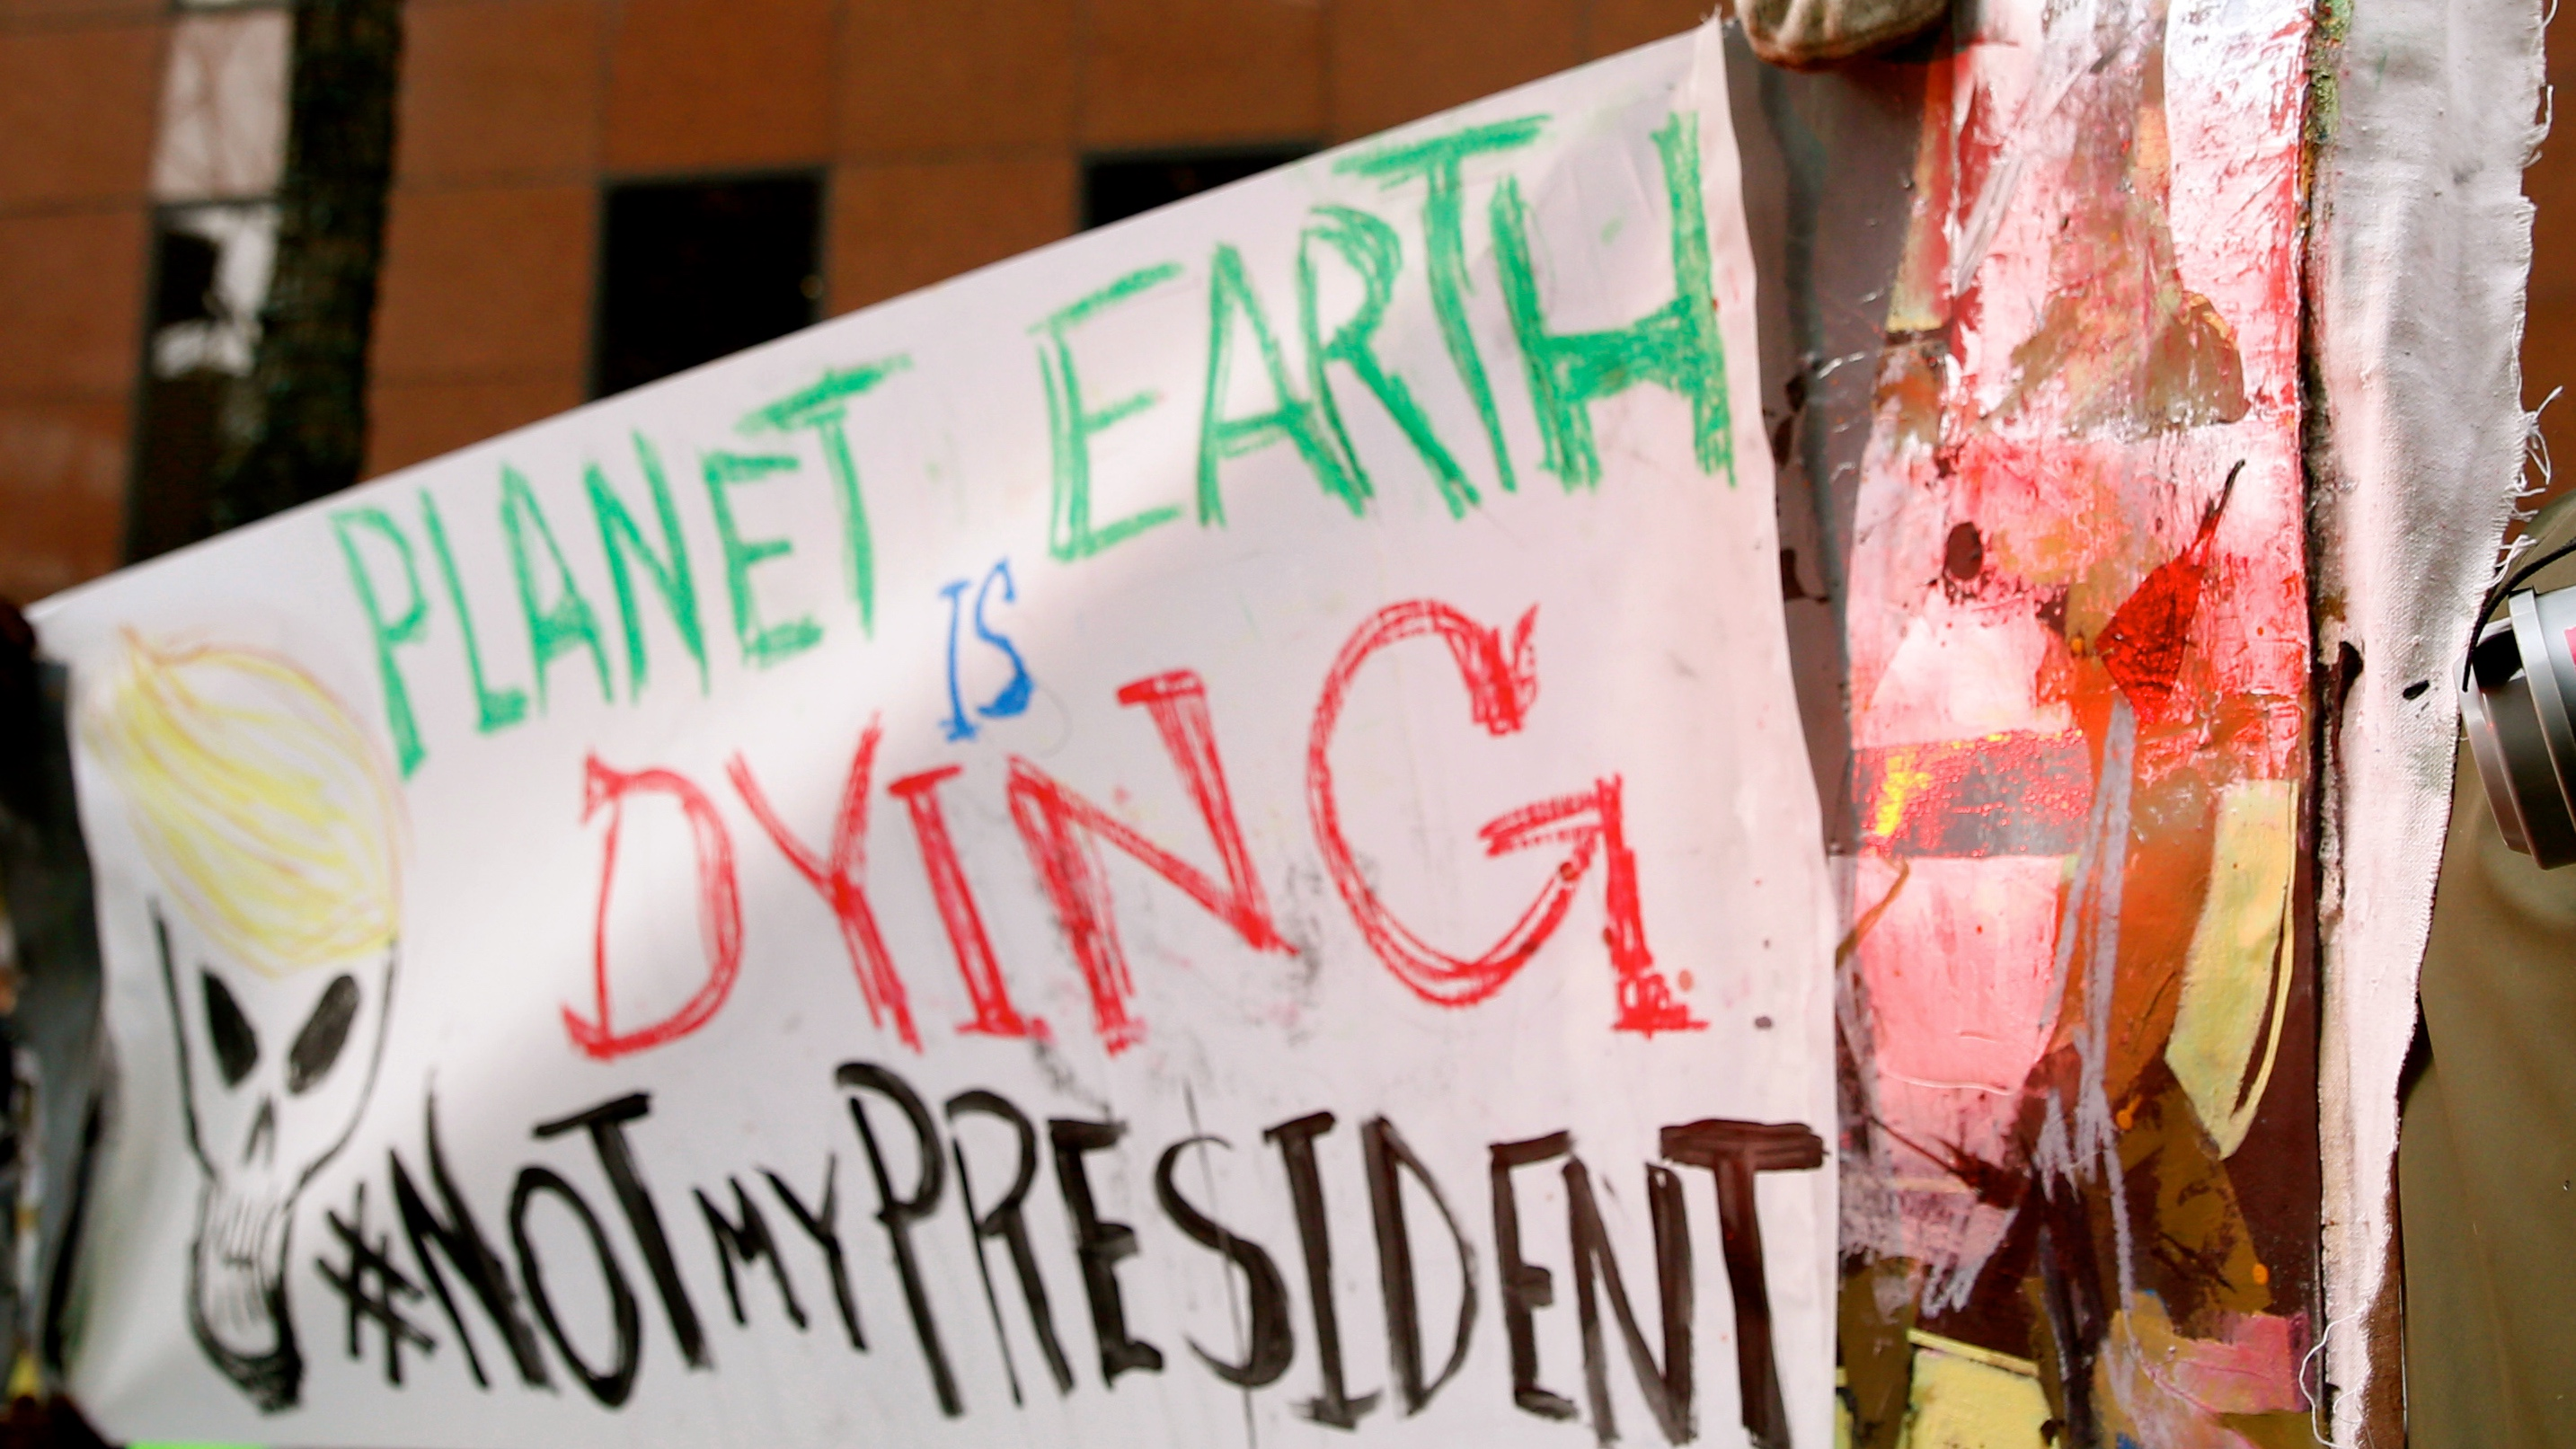 Planet earth is dying sign at protest in NY, January 2017.